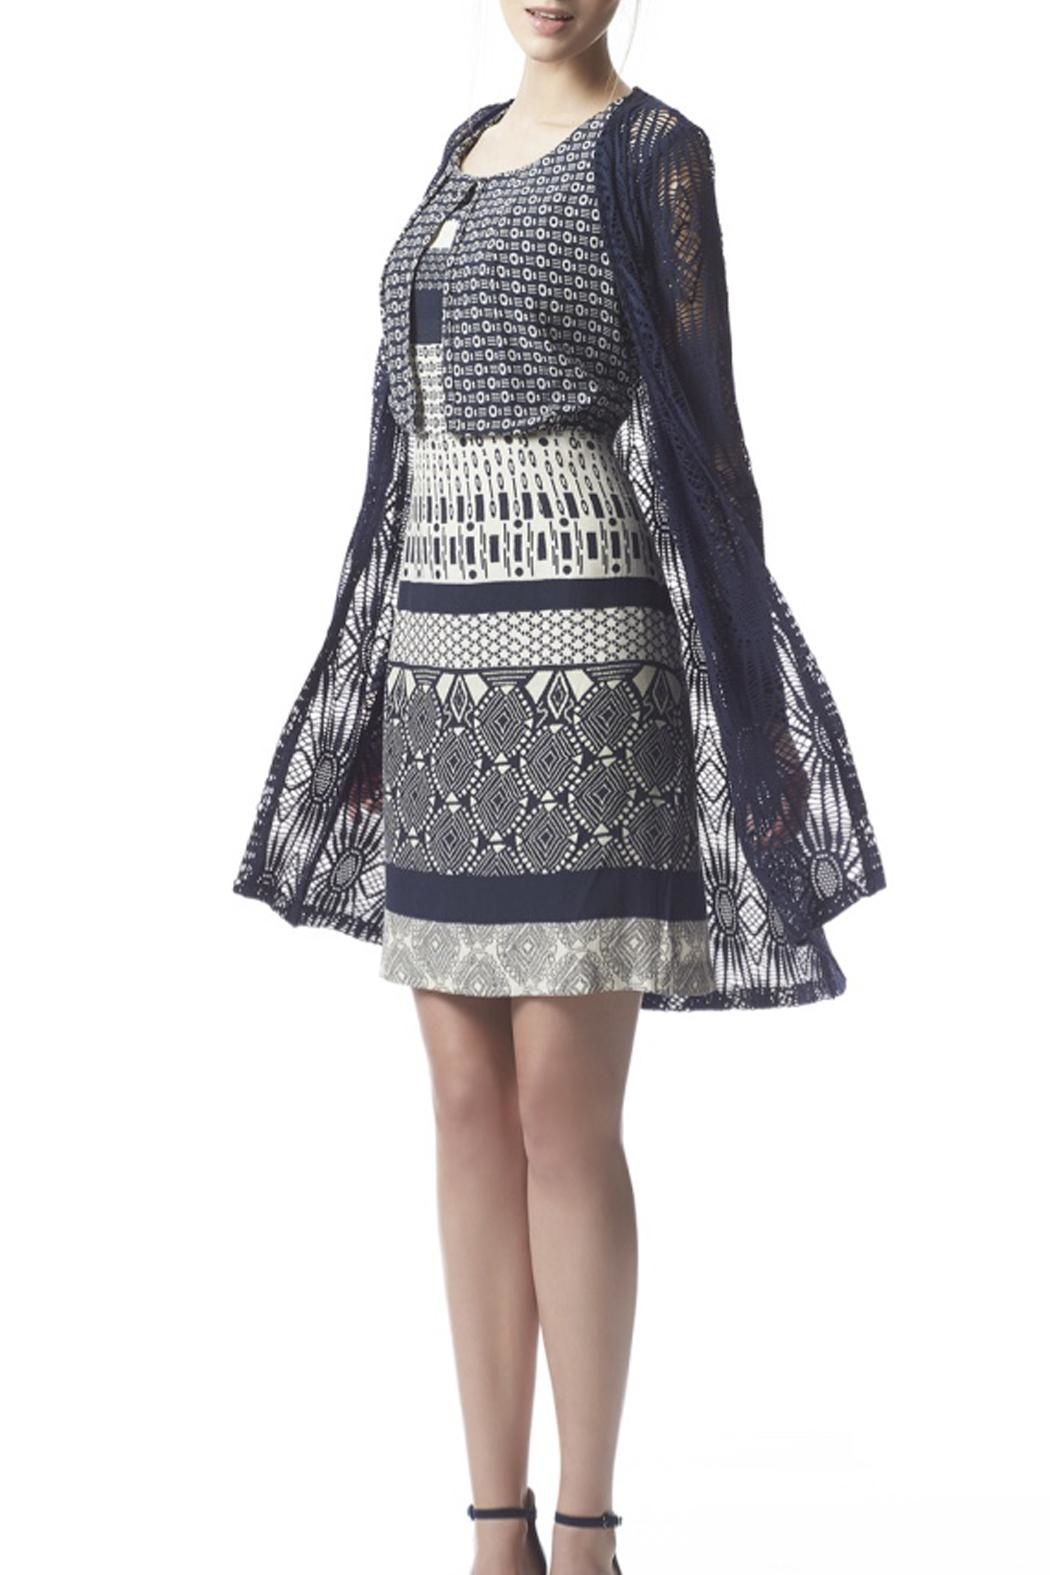 Fox's Graphic Pattern Dress - Side Cropped Image